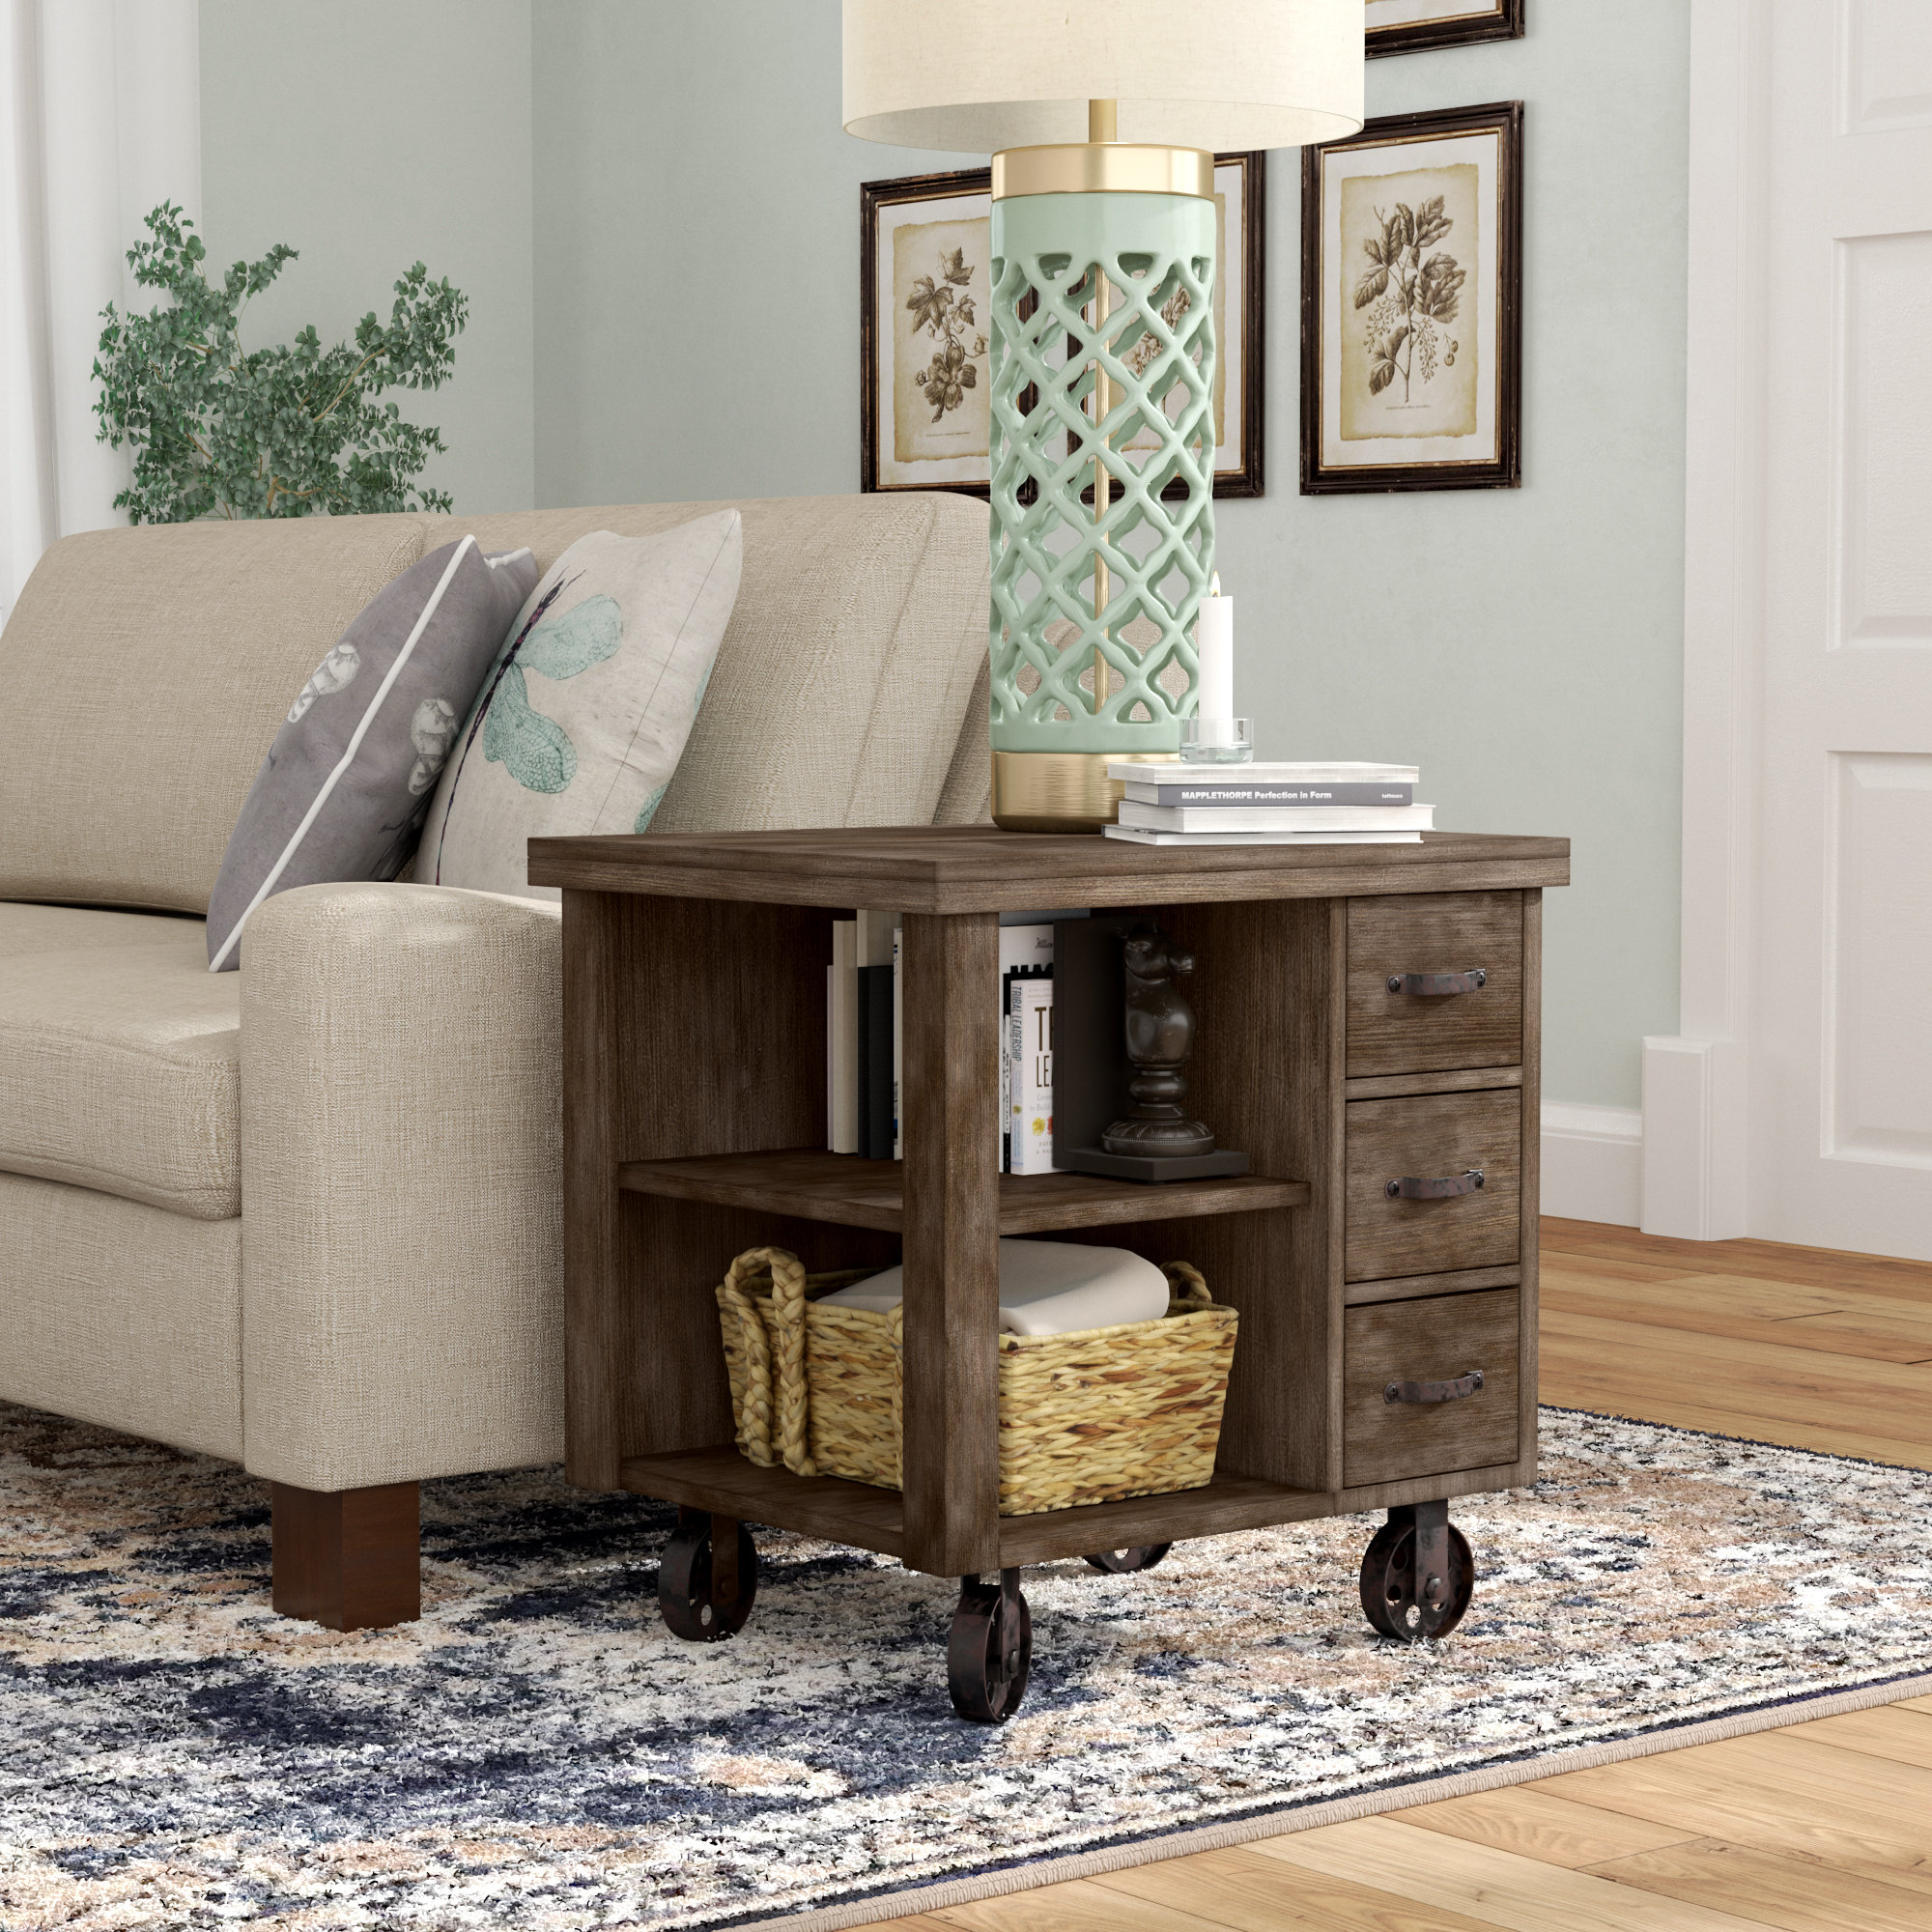 laurel foundry modern farmhouse remy end table with storage tables reviews glass front miami dolphins tailgate gear bedside alternatives weather dog beds made from mor furniture